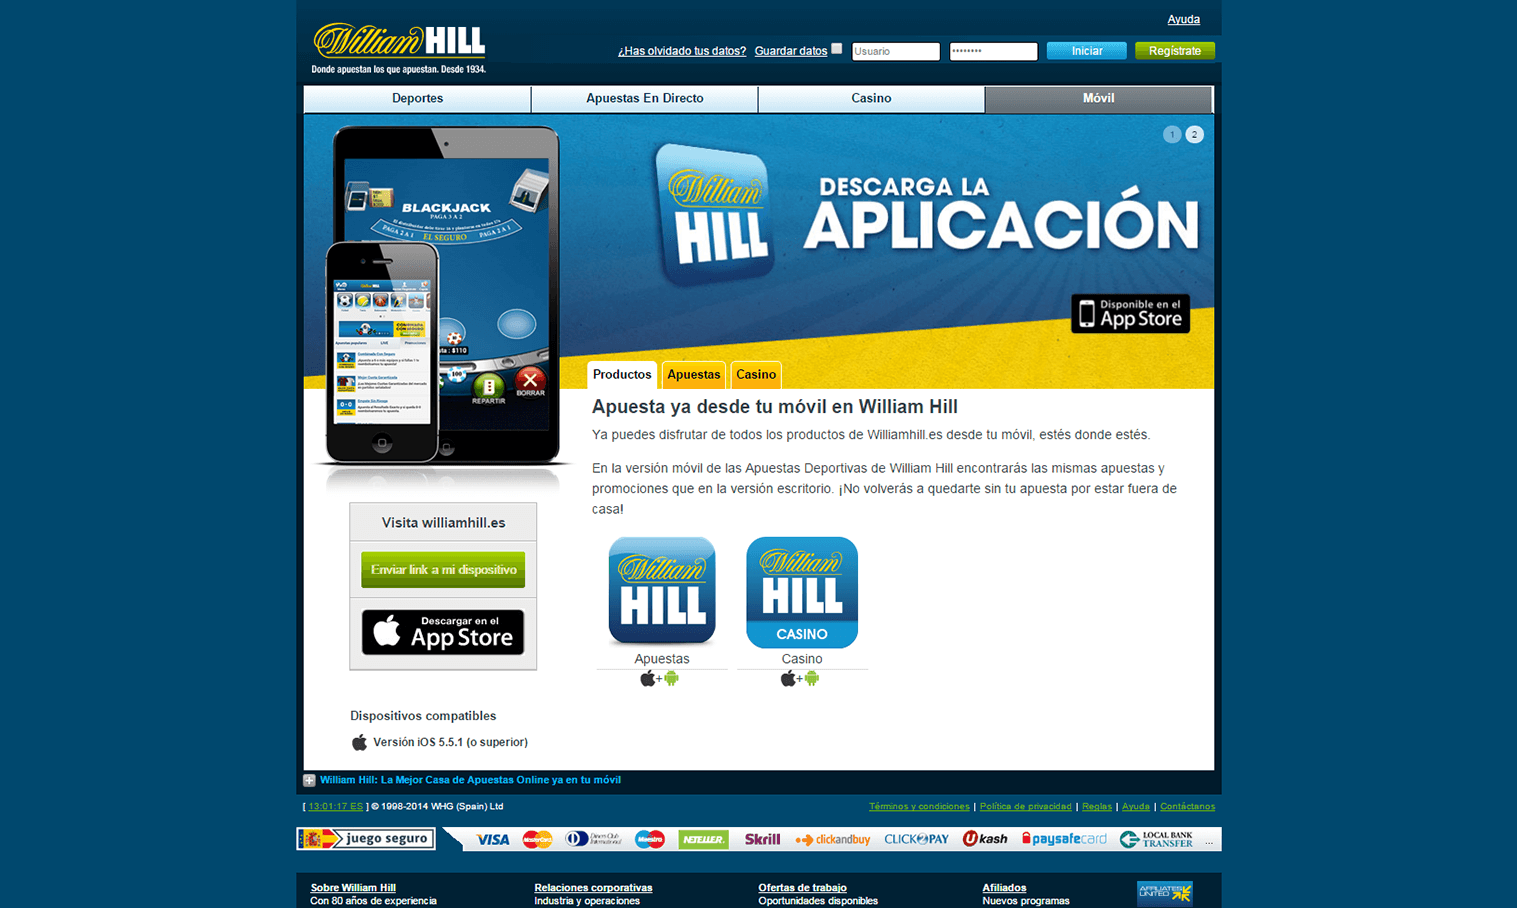 William hill app casino online legales en Coimbra - 64441